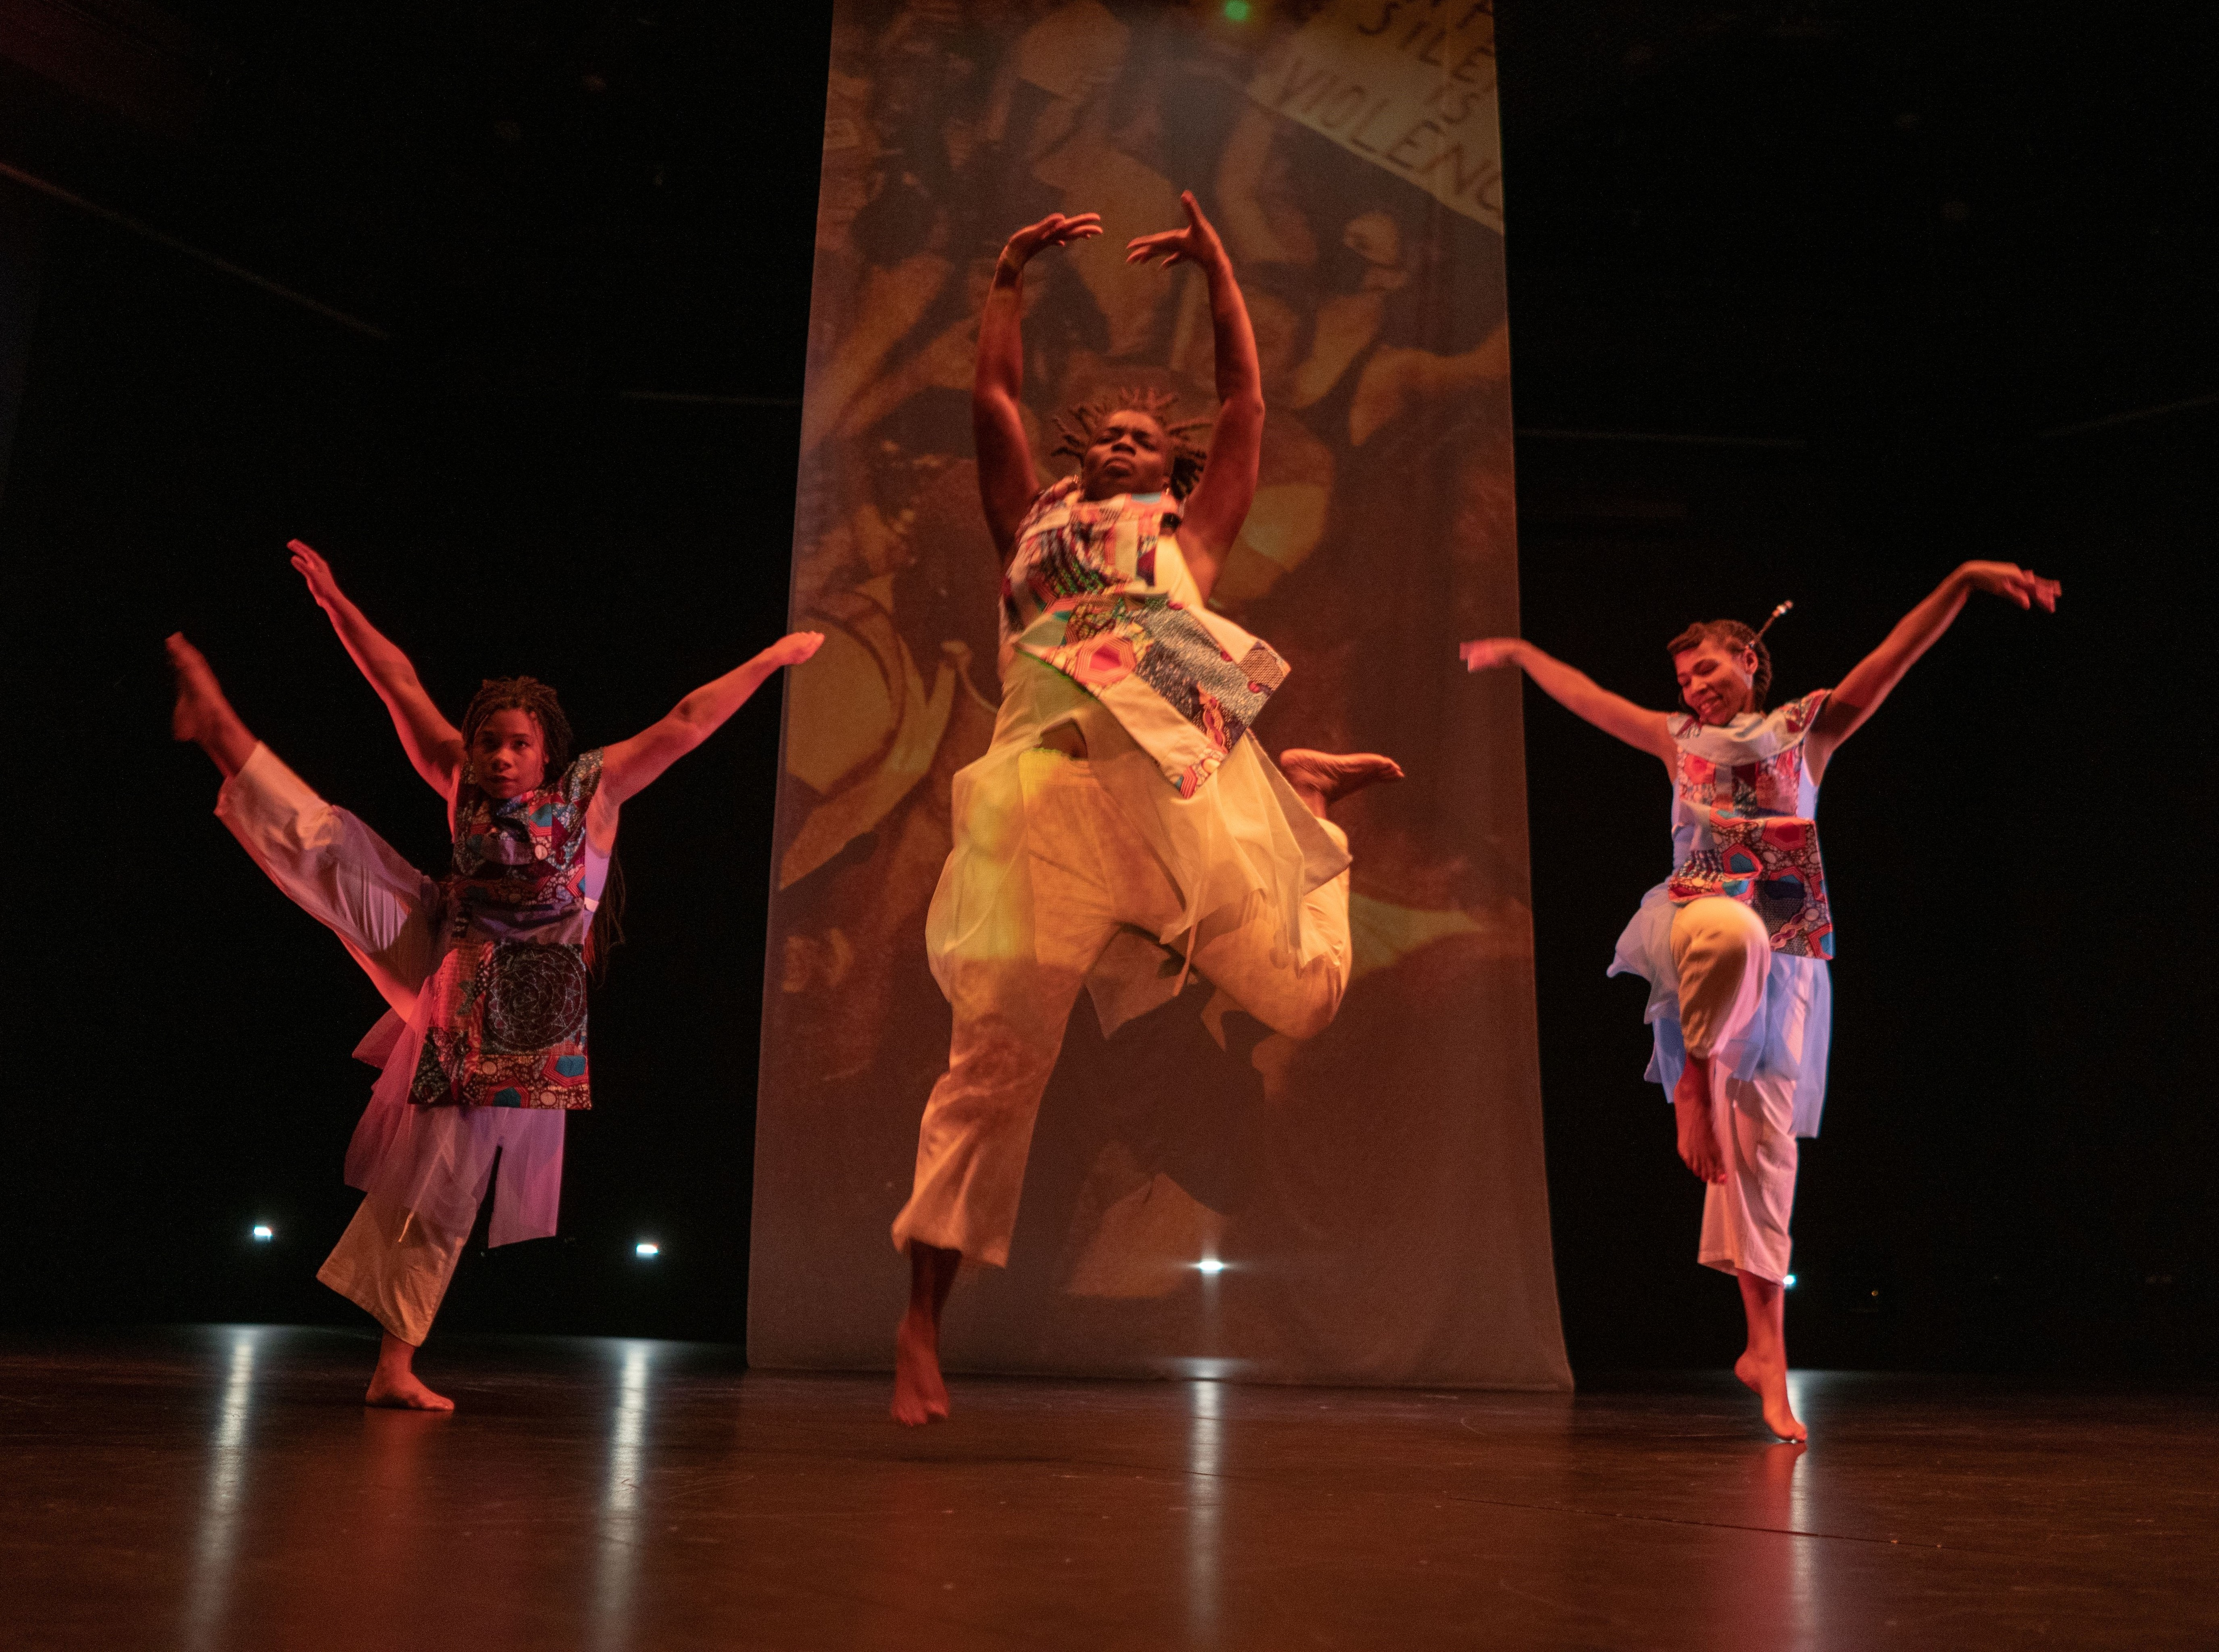 Three dancers in flowing costumes perform in front of a scrim in a dark theater